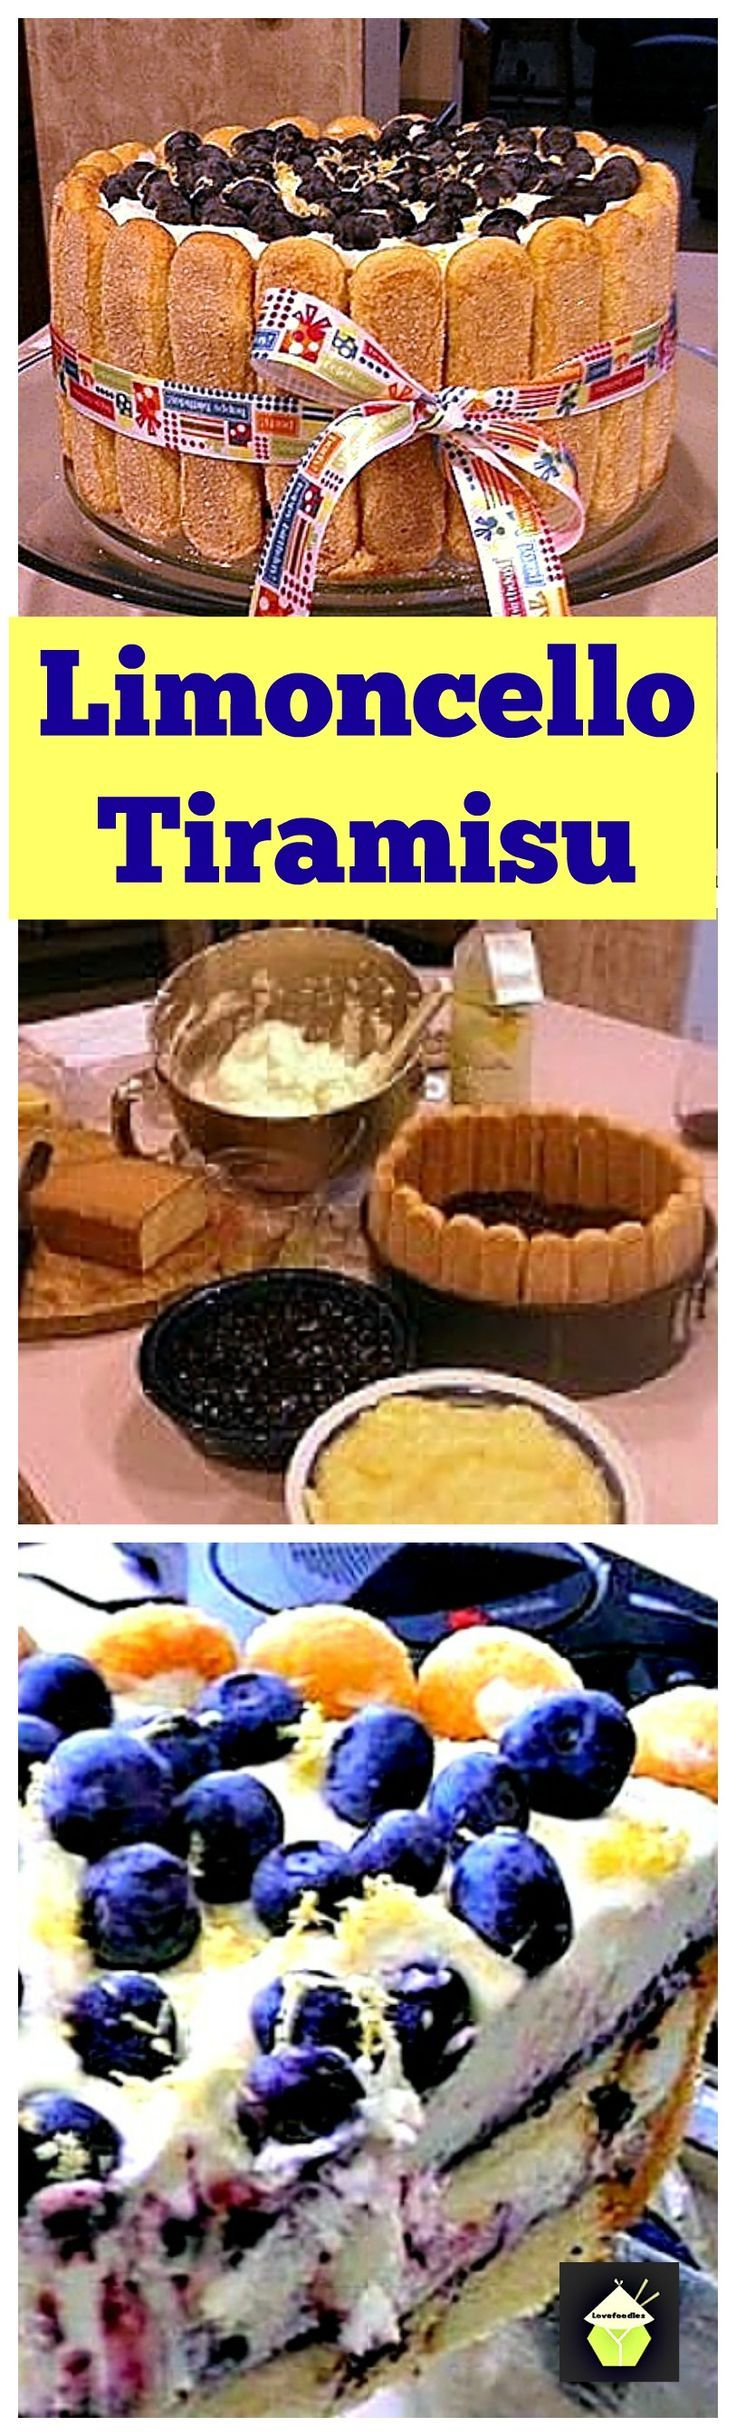 17 best ideas about come and see on pinterest wedding - Tiramisu limoncello ...